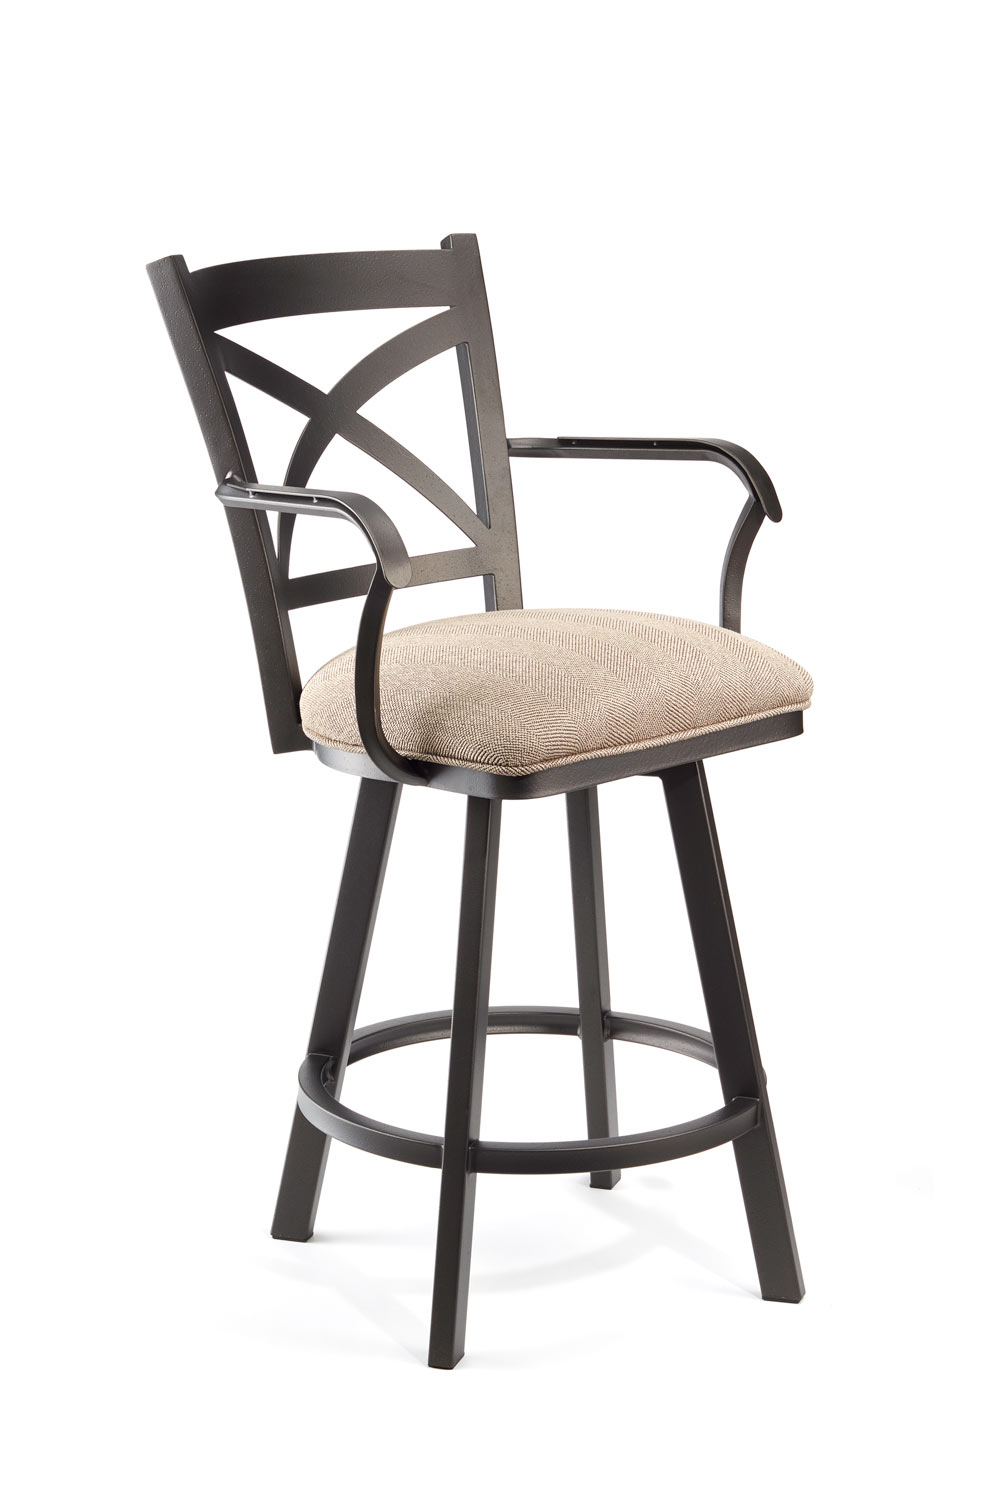 Remarkable Edmonton Swivel Stool With Back Alphanode Cool Chair Designs And Ideas Alphanodeonline